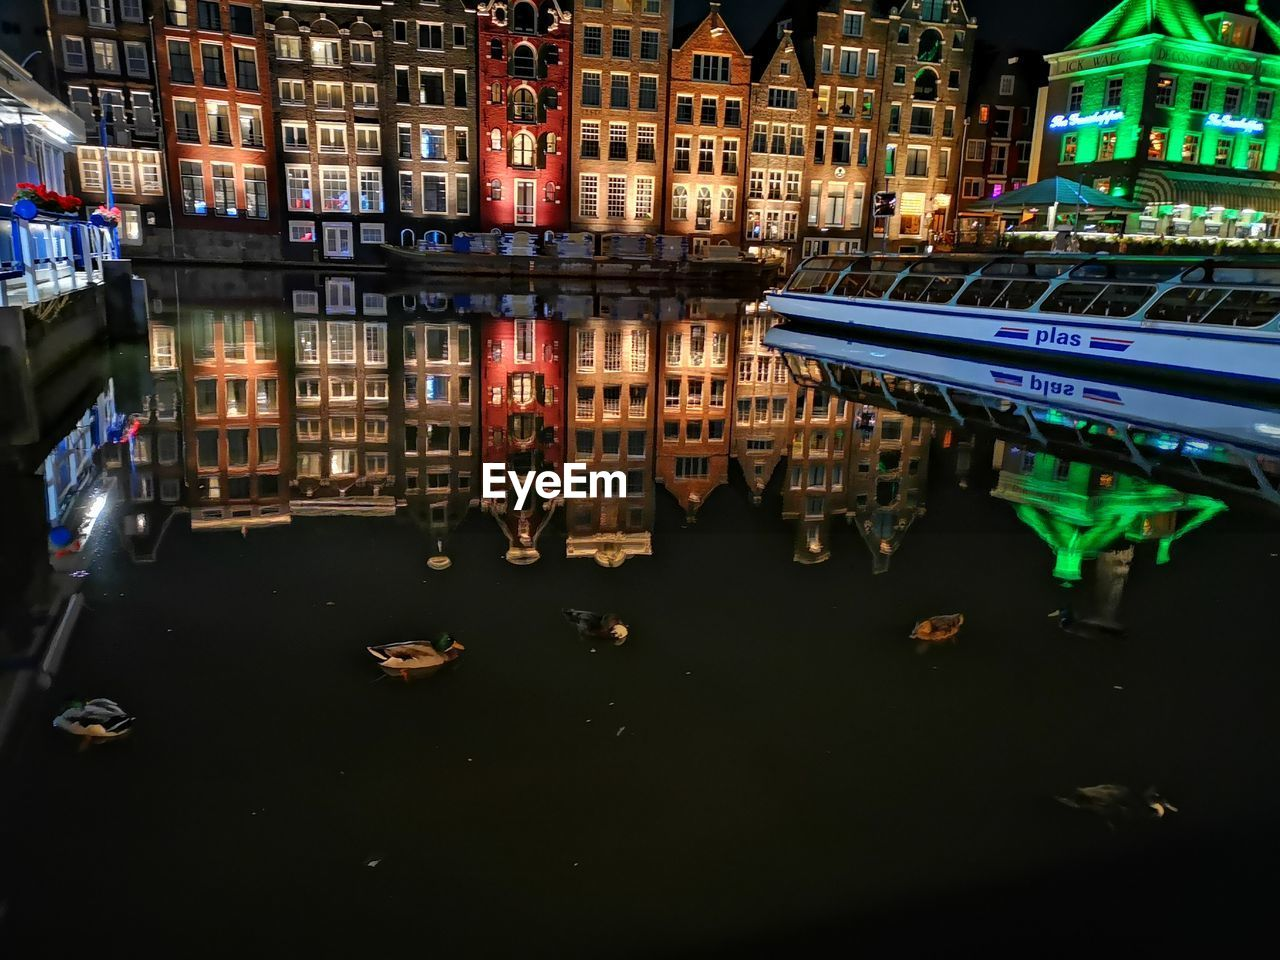 REFLECTION OF ILLUMINATED BUILDINGS IN CANAL